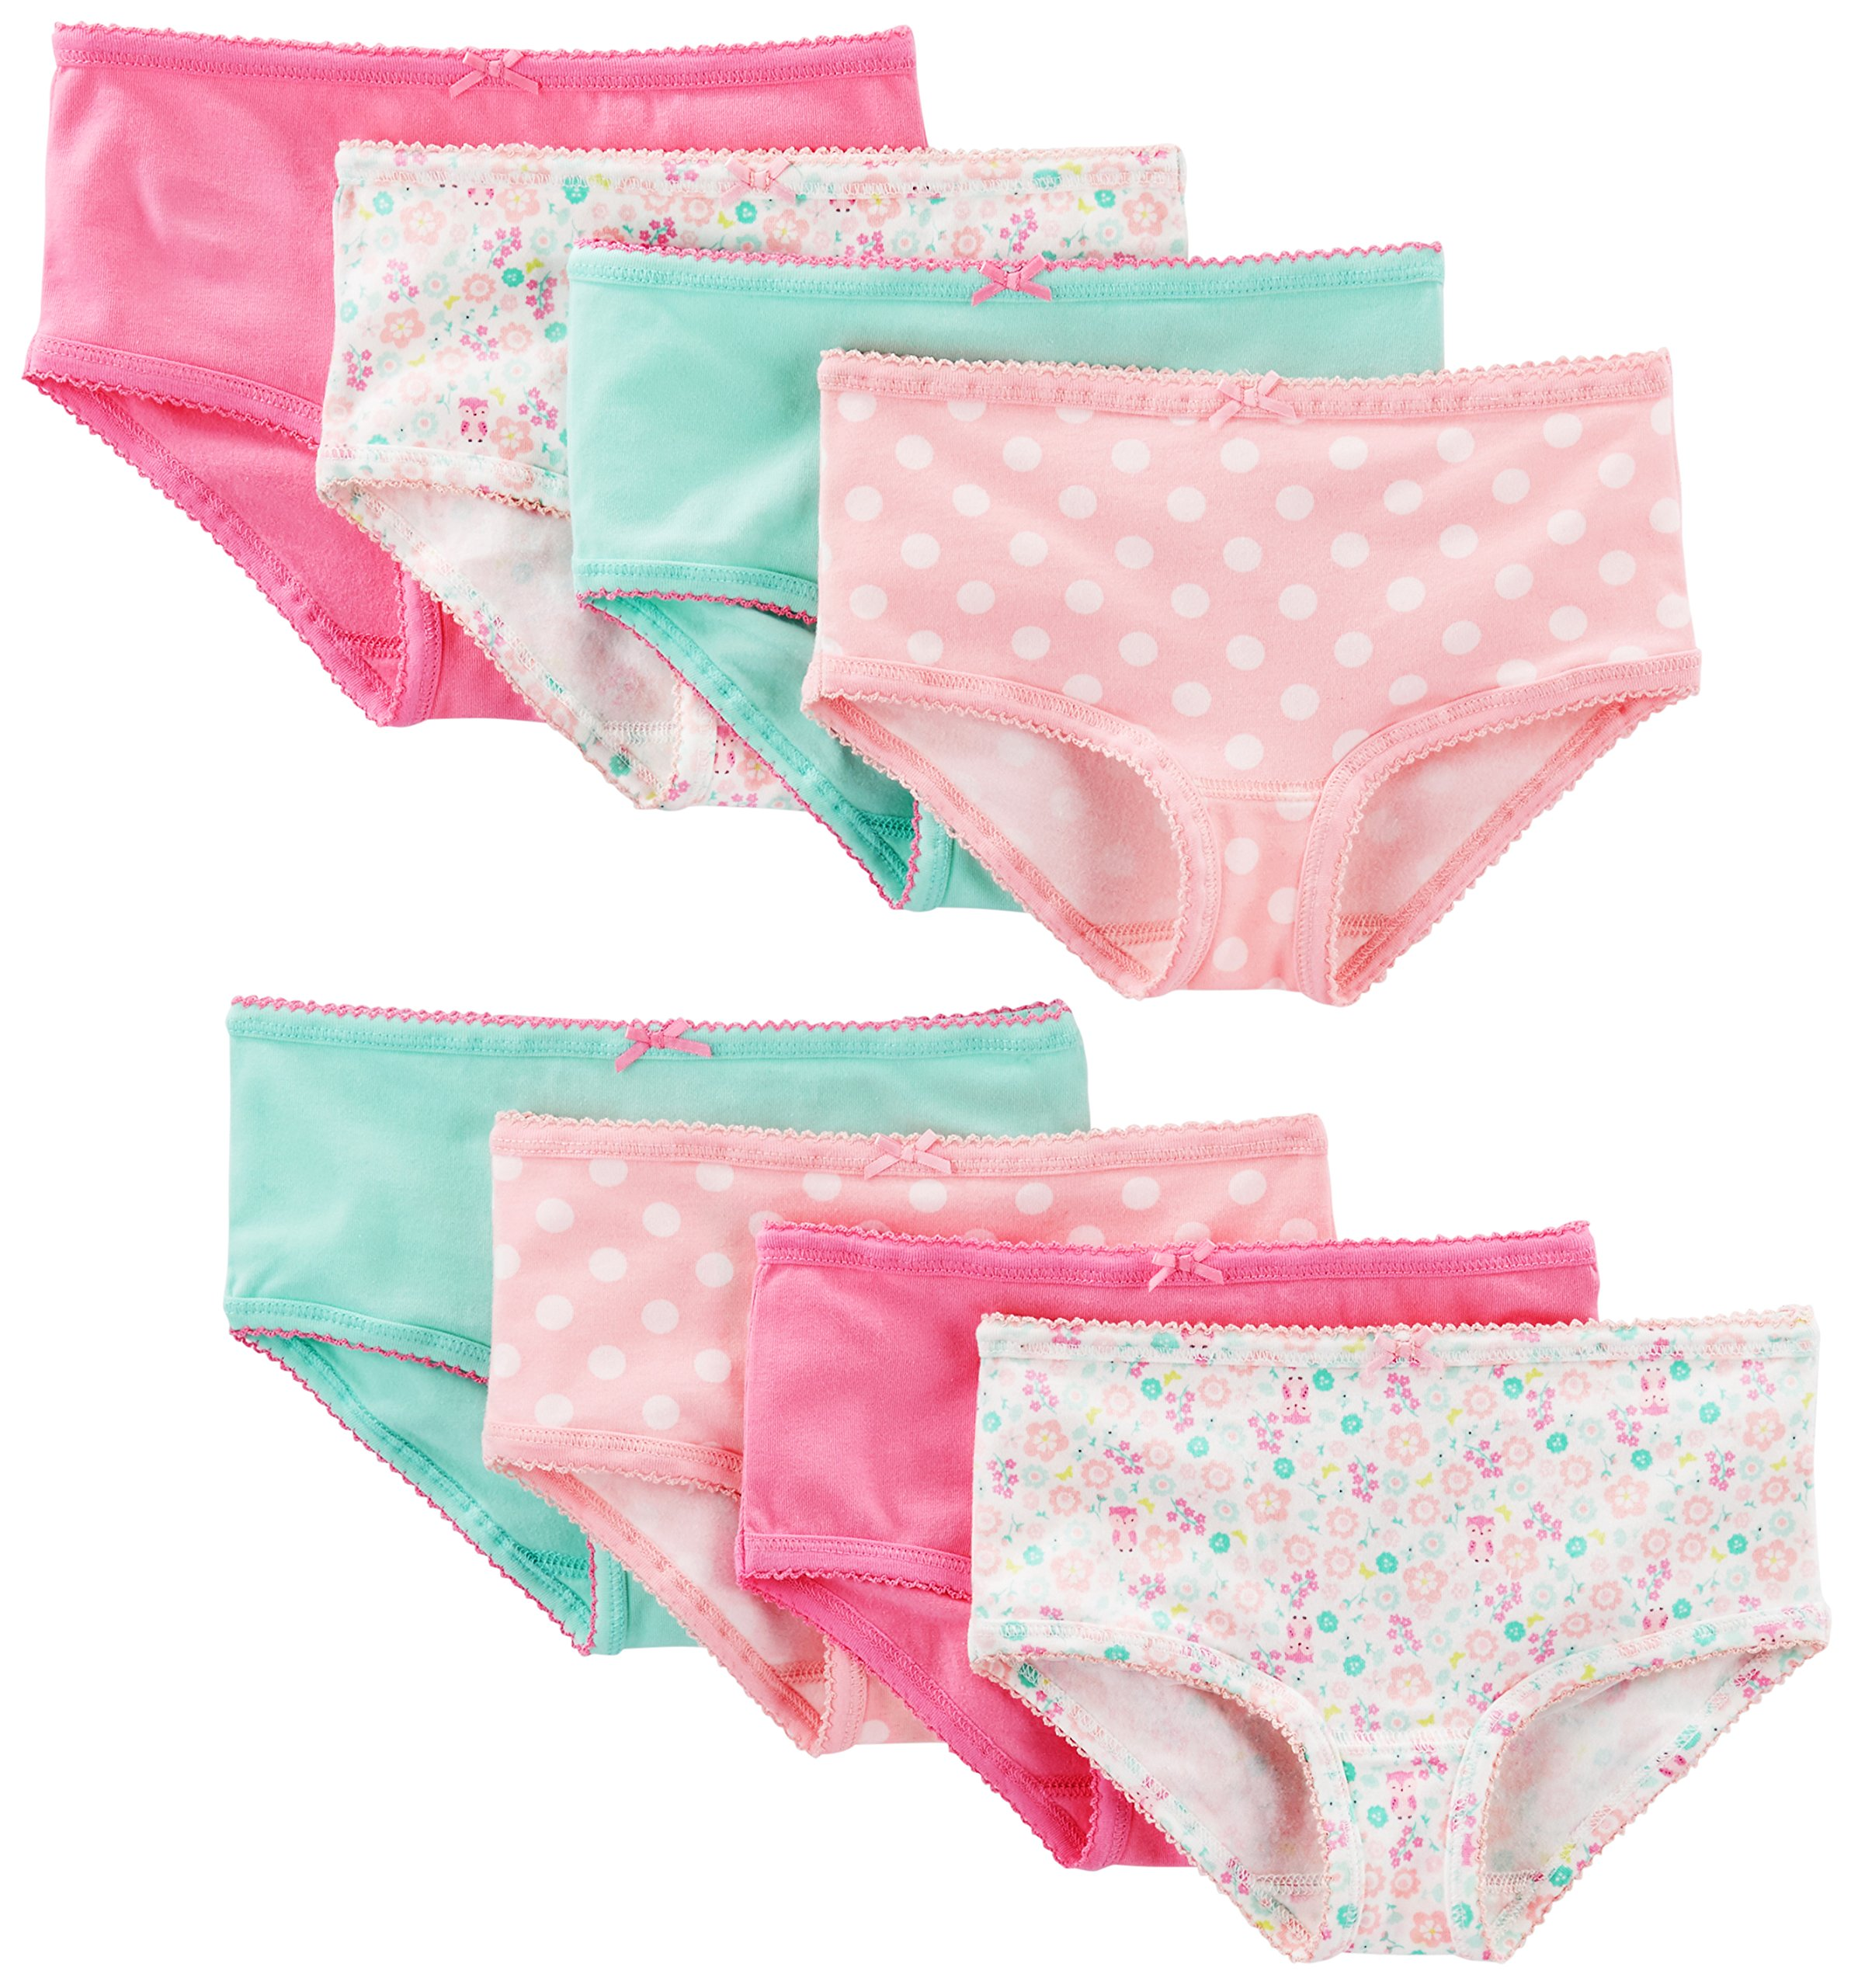 Simple Joys by Carters Little Kid and Toddler Girls 8-Pack Underwear